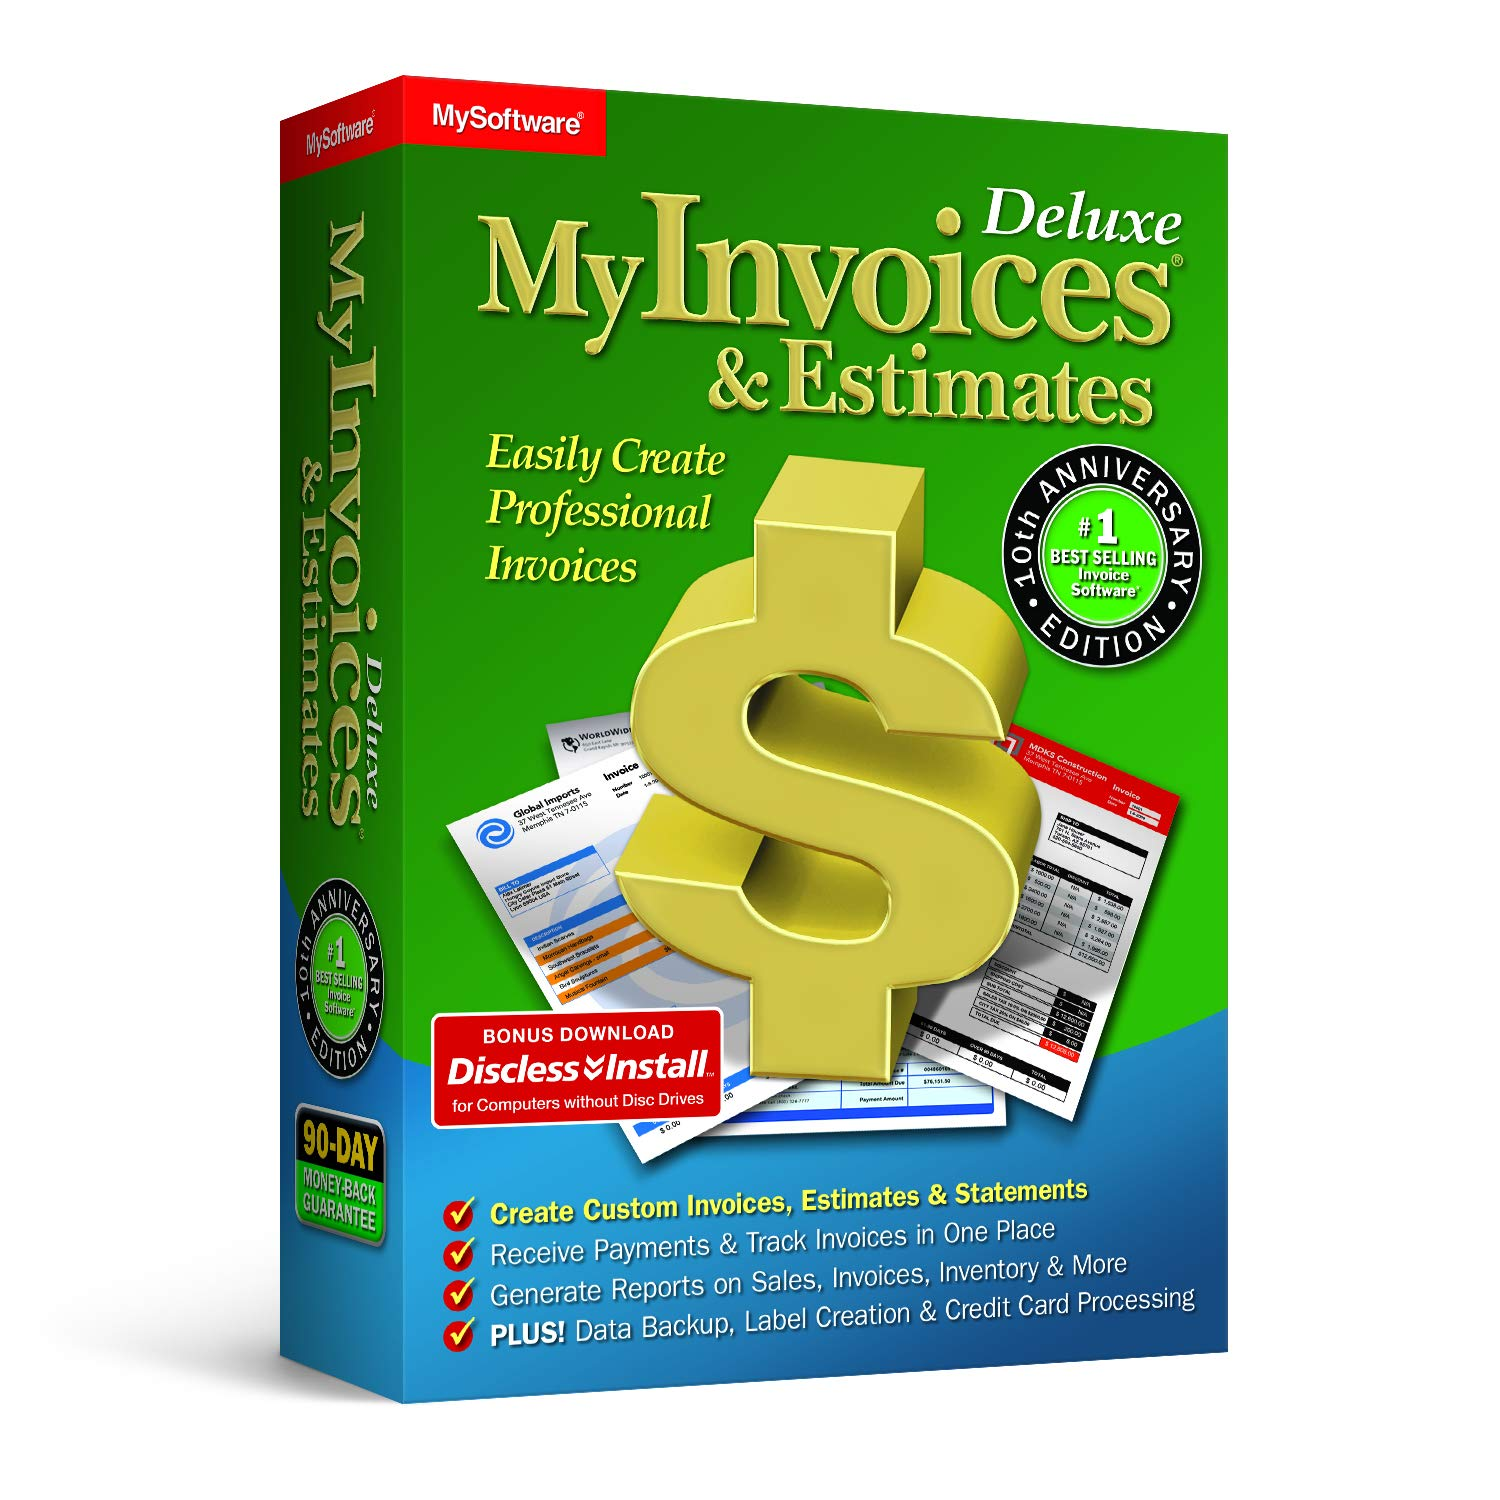 MyInvoices & Estimates Deluxe by Avanquest